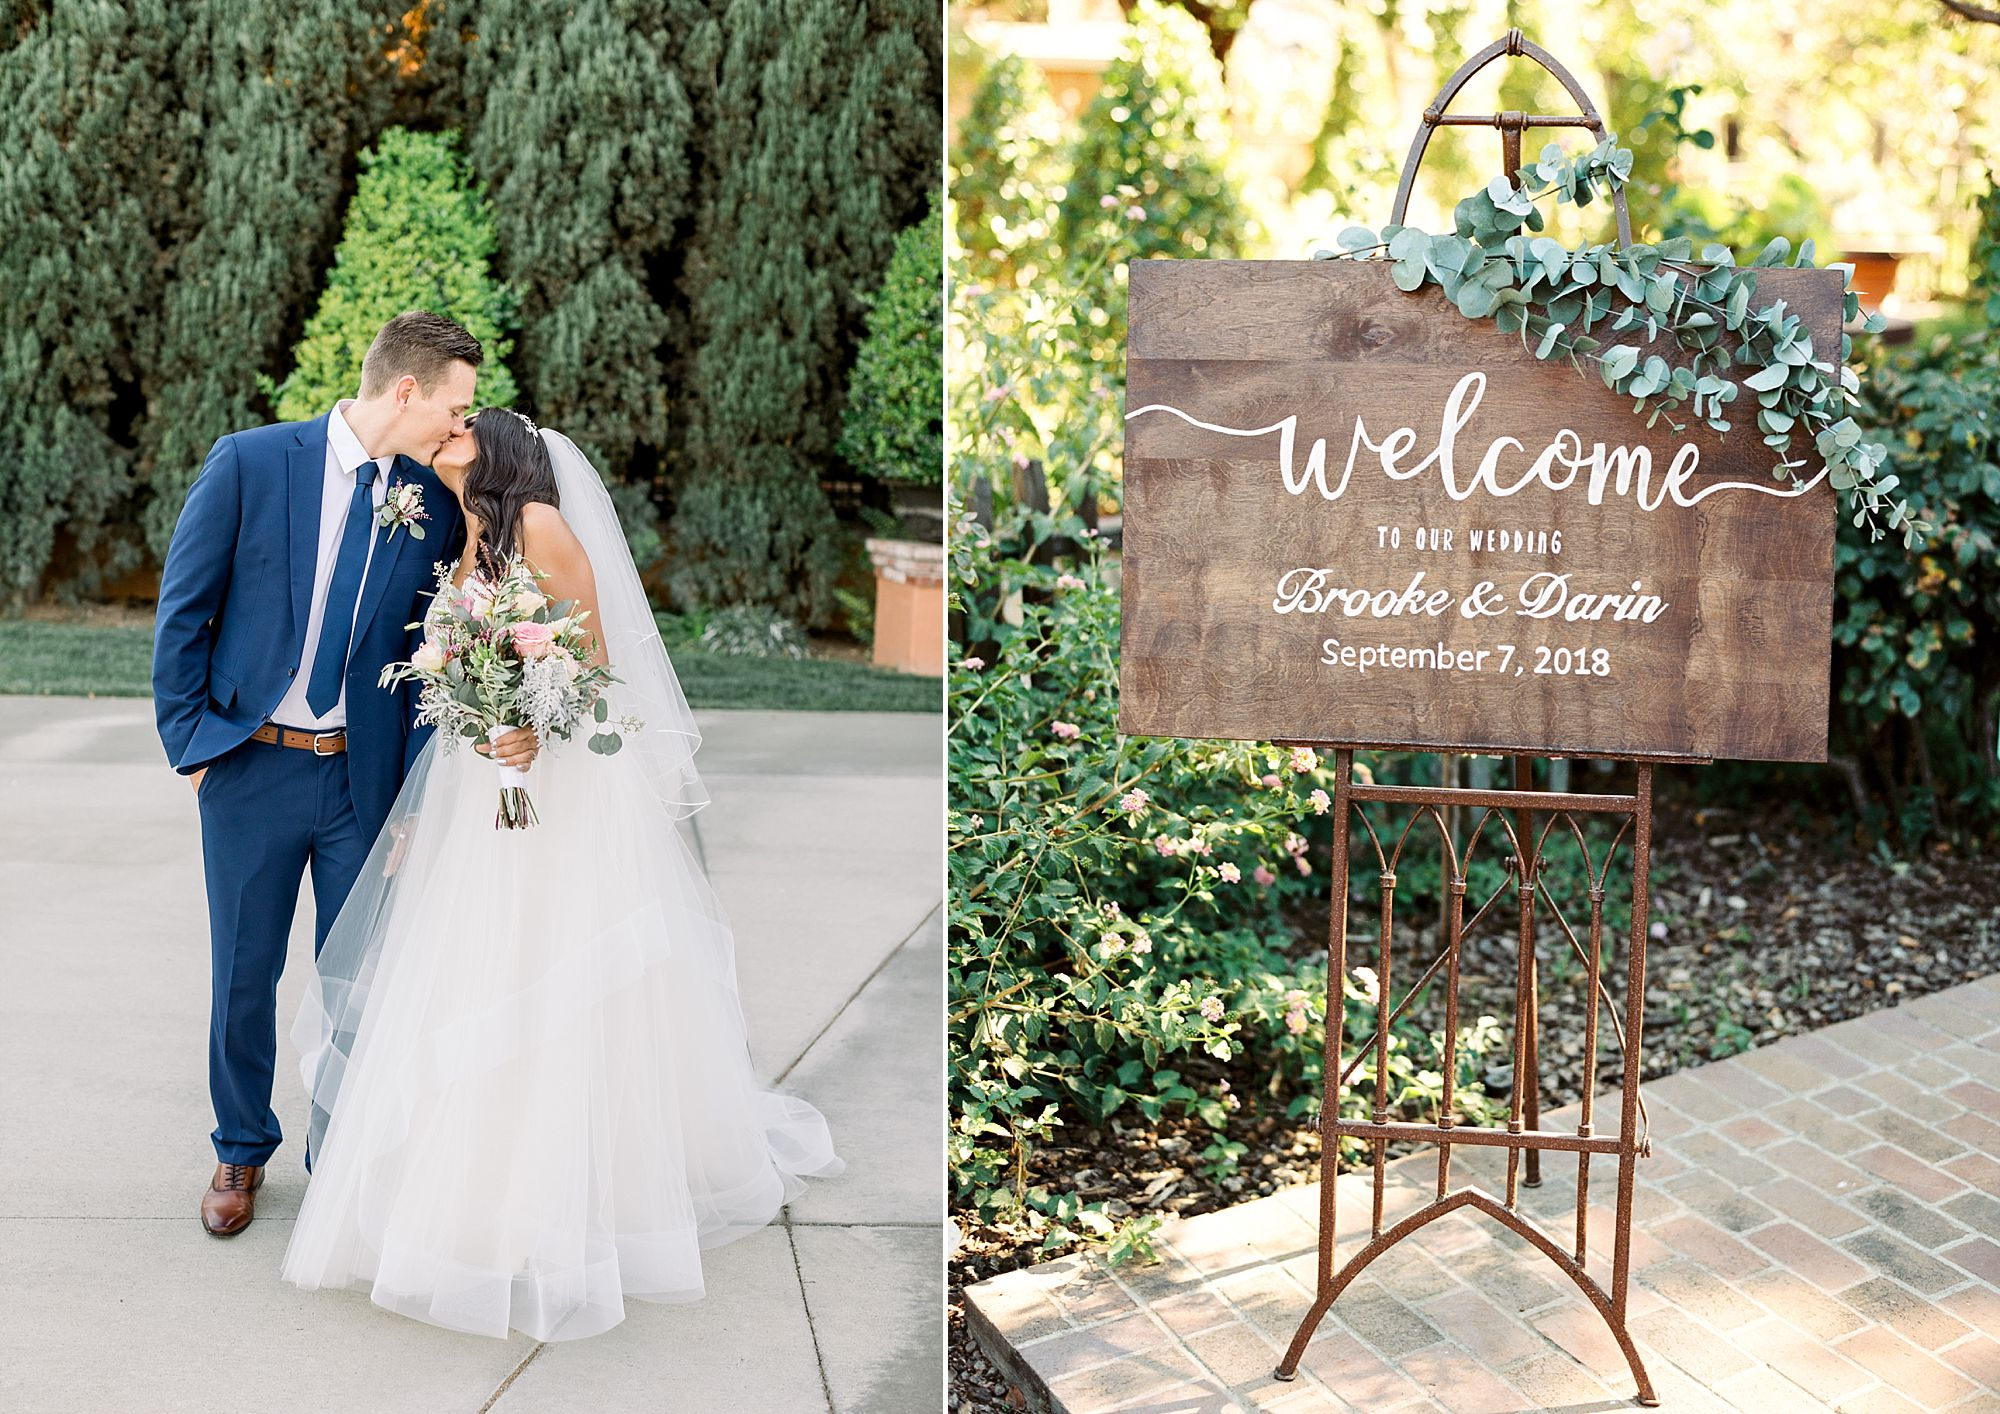 The River Mill Wedding Stockton - Ashley Baumgartner - Stockton Wedding Photographer - Sacramento Wedding Photography - Hybrid and Film Photographer - Sacramento Film Photographer_0040.jpg